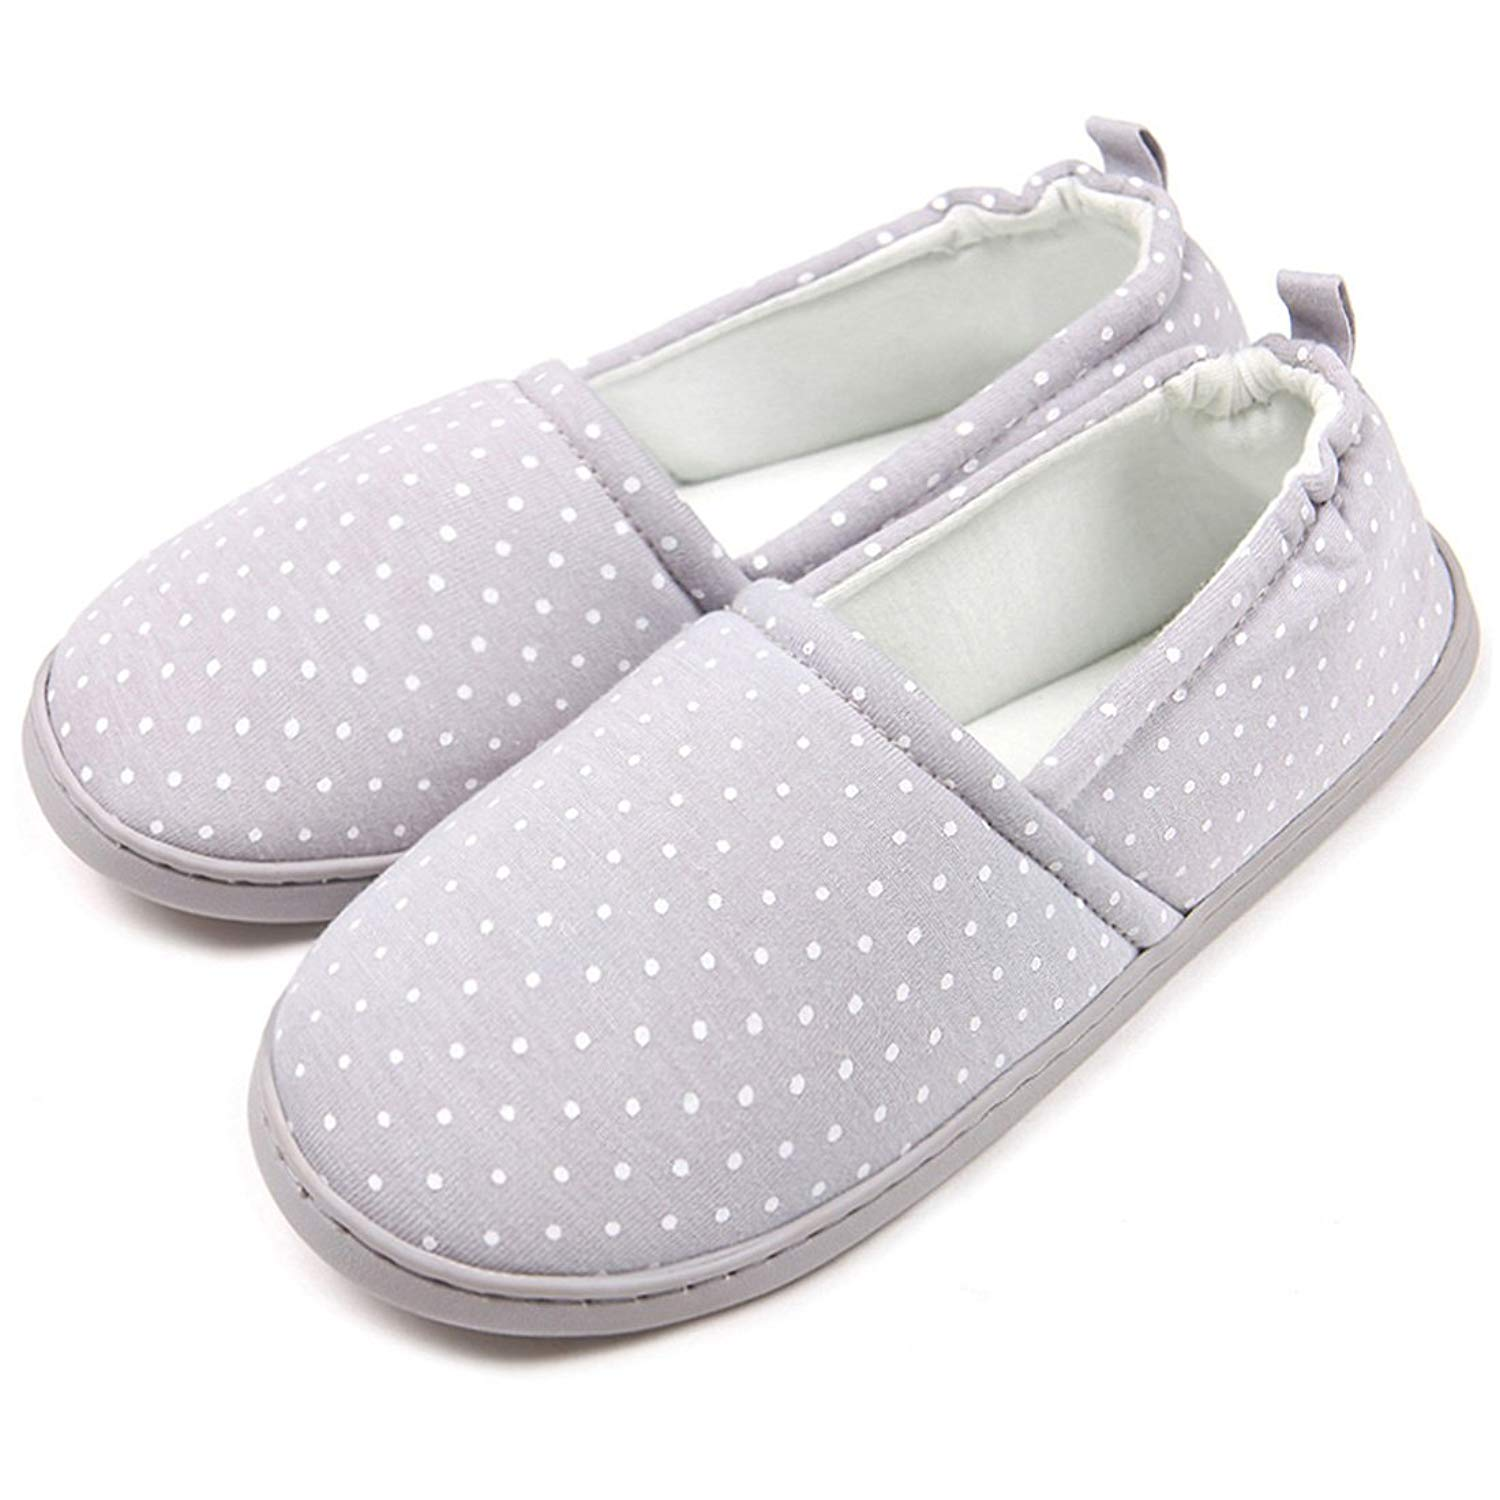 ChicNChic Women Comfortable Cotton Dot Anti Slip Slippers Washable Soft Sole Indoor House Shoes